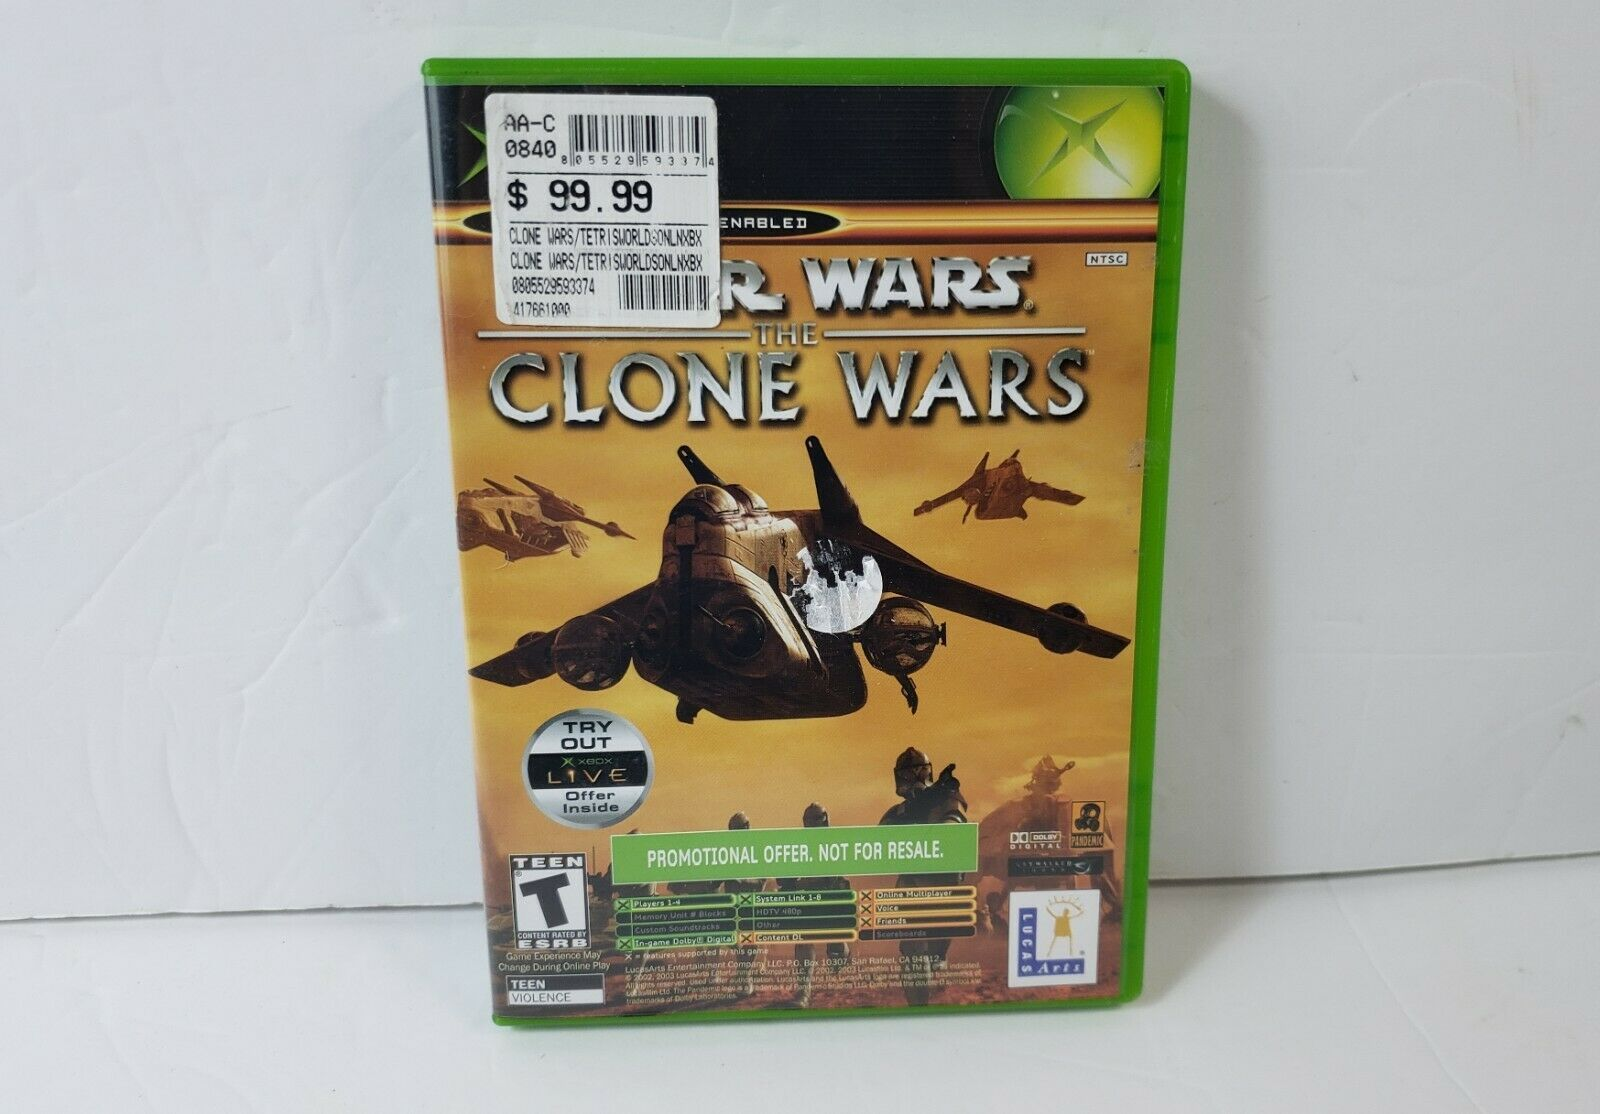 Star Wars: The Clone Wars / Tetris Worlds (Microsoft Xbox, 2003) Not for Resale